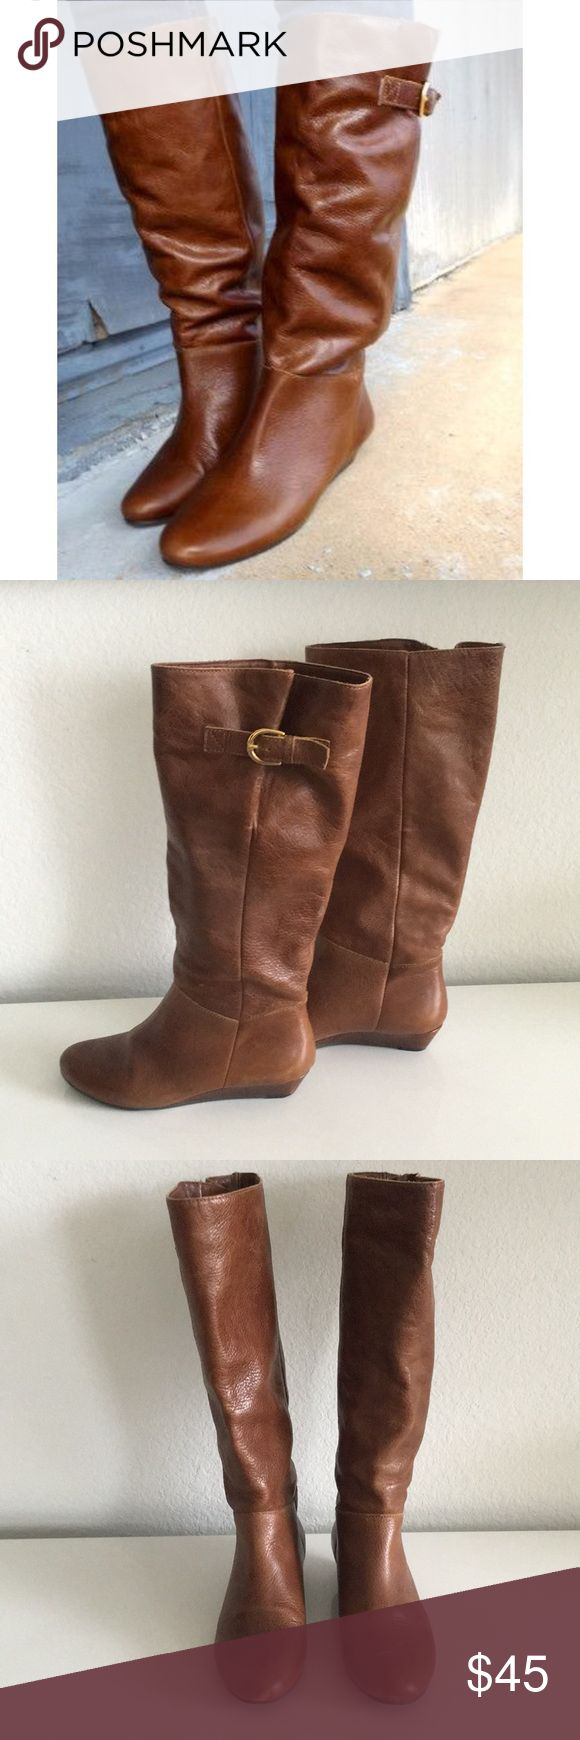 """Steven by Steve Madden Intyce Boots Sz 6 Cognac colored boots with gold buckle detail and 1"""" silver wedge heel. Leather upper material. Man made some. Shaft height is 15.75"""". Shaft circumference is 20"""". Worn a handful of times, but in good condition. However has minor scuffs at toes and nick at the back of left boot (see pics). Price reflects wear. Box not included. No trades or PayPal. Steven By Steve Madden Shoes"""